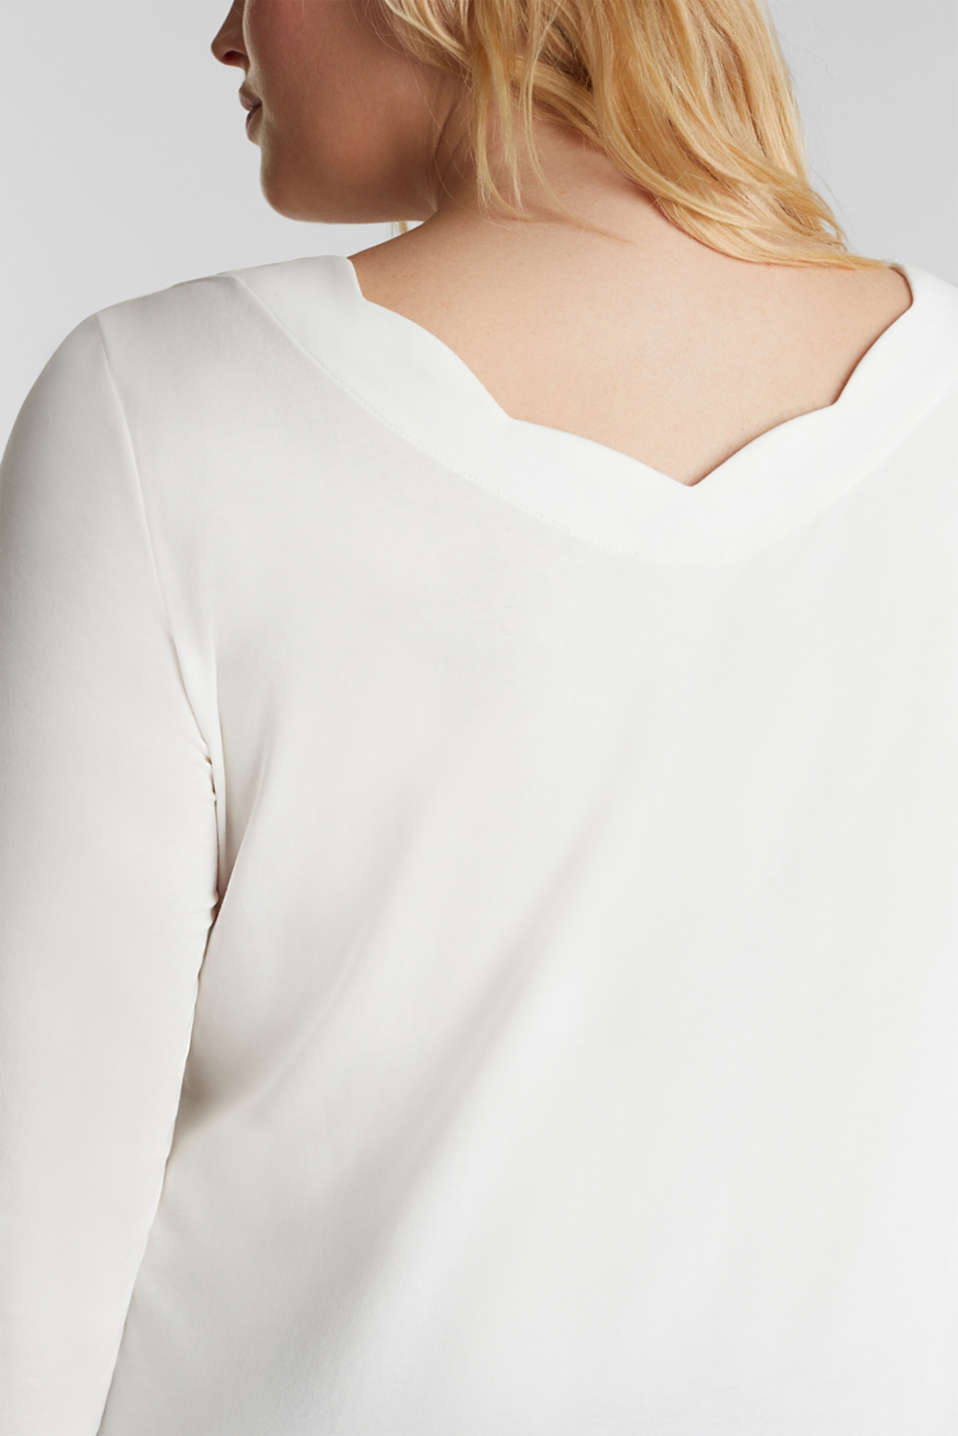 CURVY top with wavy details, OFF WHITE, detail image number 2